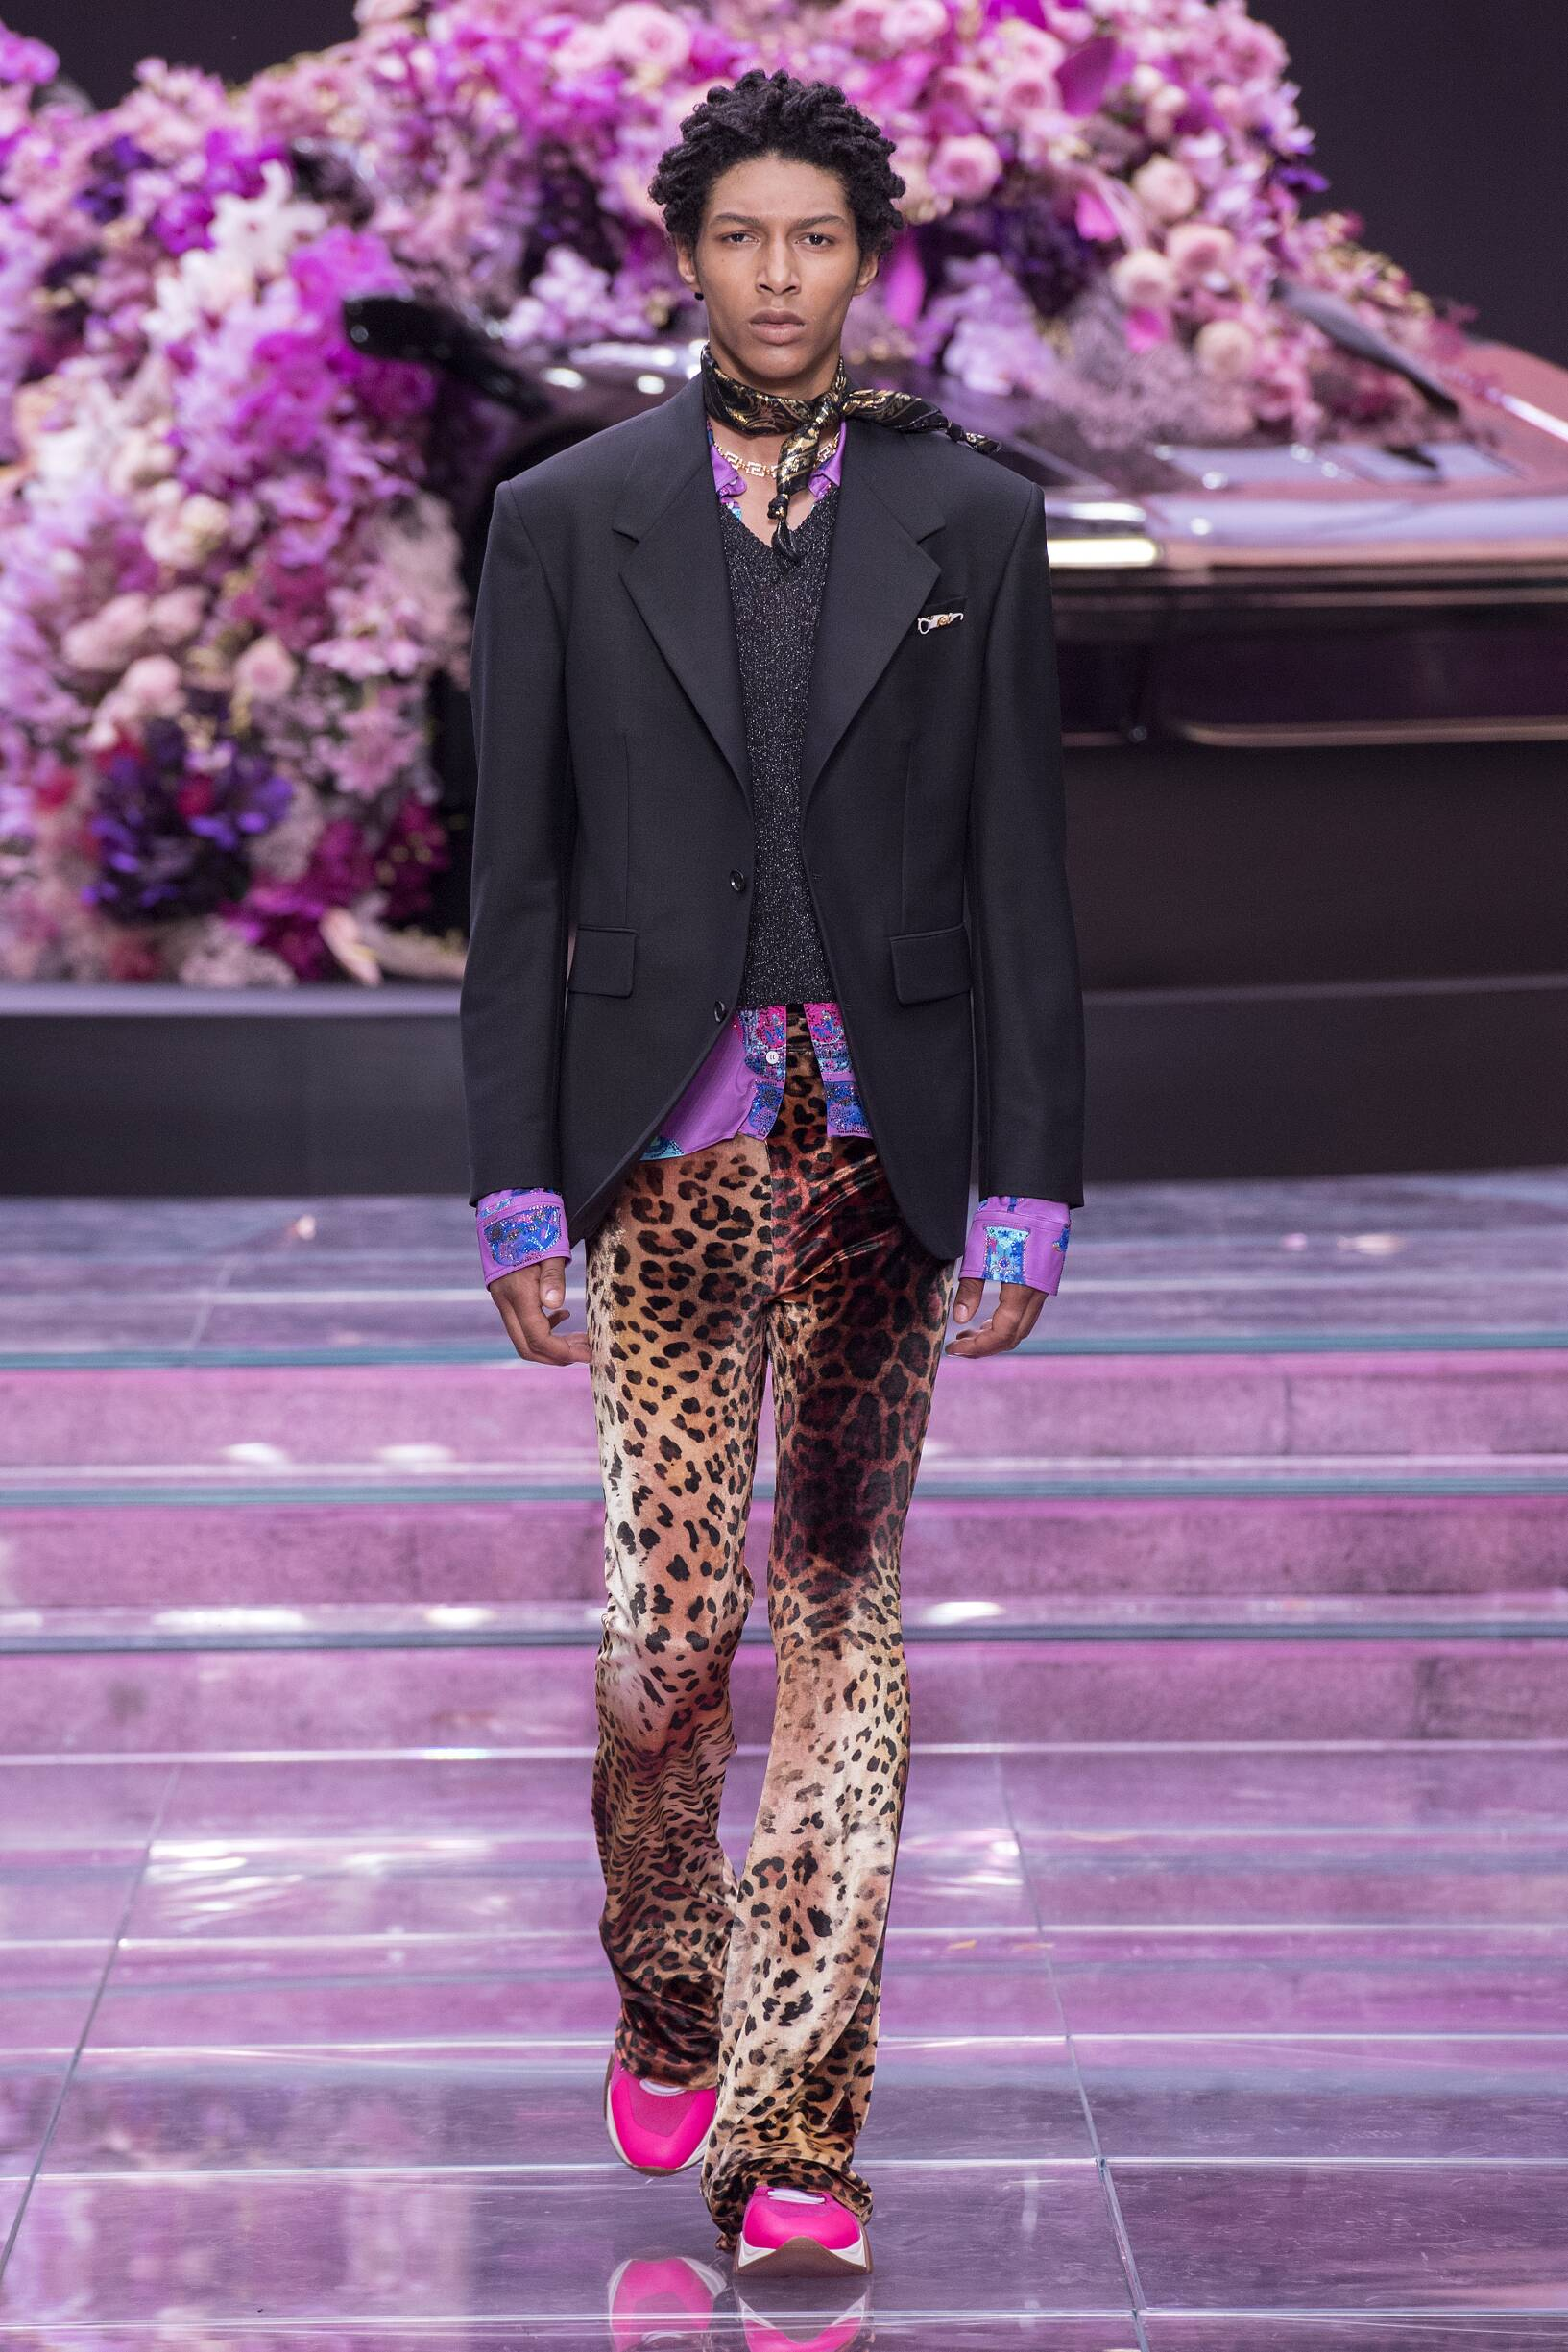 VERSACE SPRING SUMMER 2020 MEN'S COLLECTION | The Skinny Beep